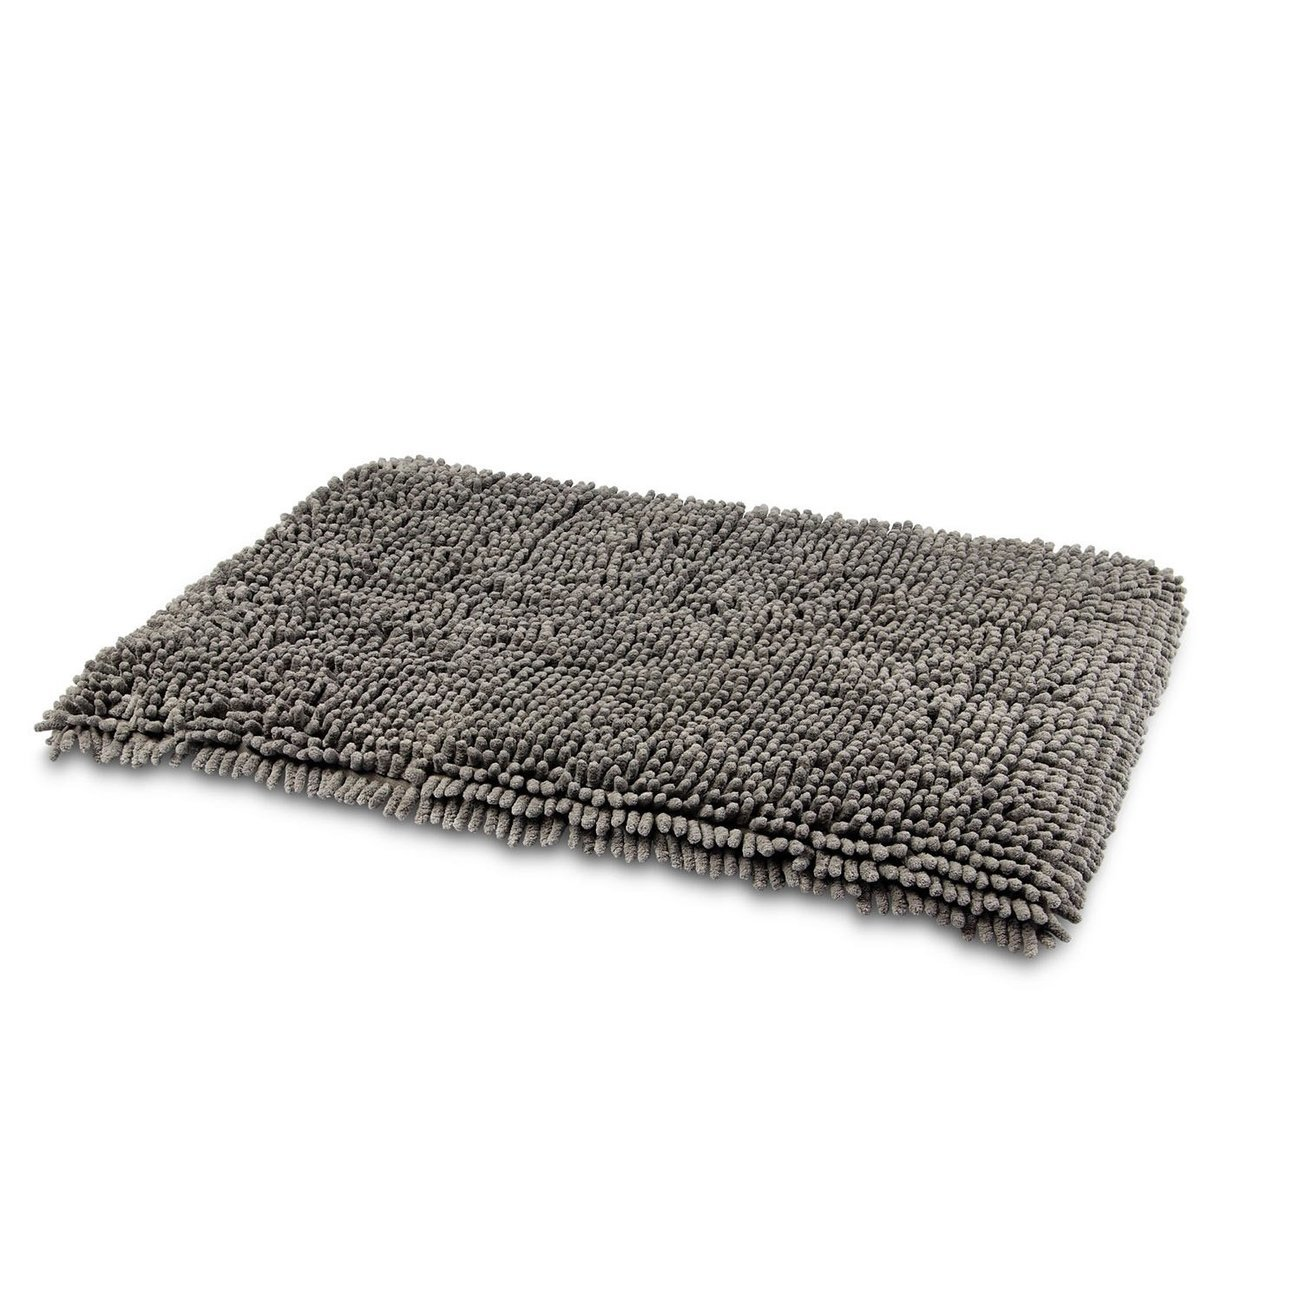 Wolters Cleankeeper Reise Pad, Gr. L: 86 x 53 cm, warm grey